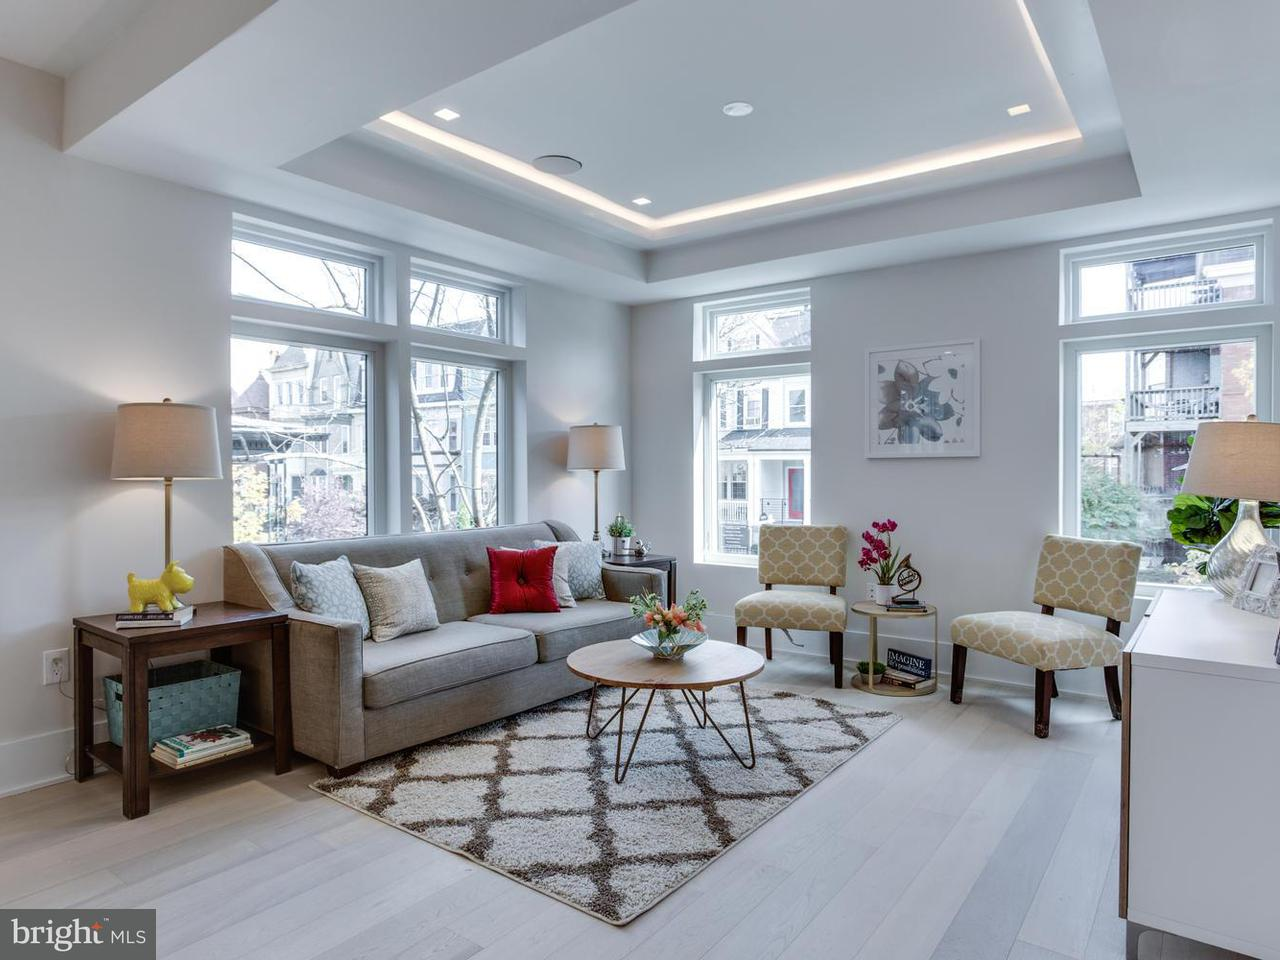 Duplex for Sale at 1001 MONROE ST NW #1 1001 MONROE ST NW #1 Washington, District Of Columbia 20010 United States